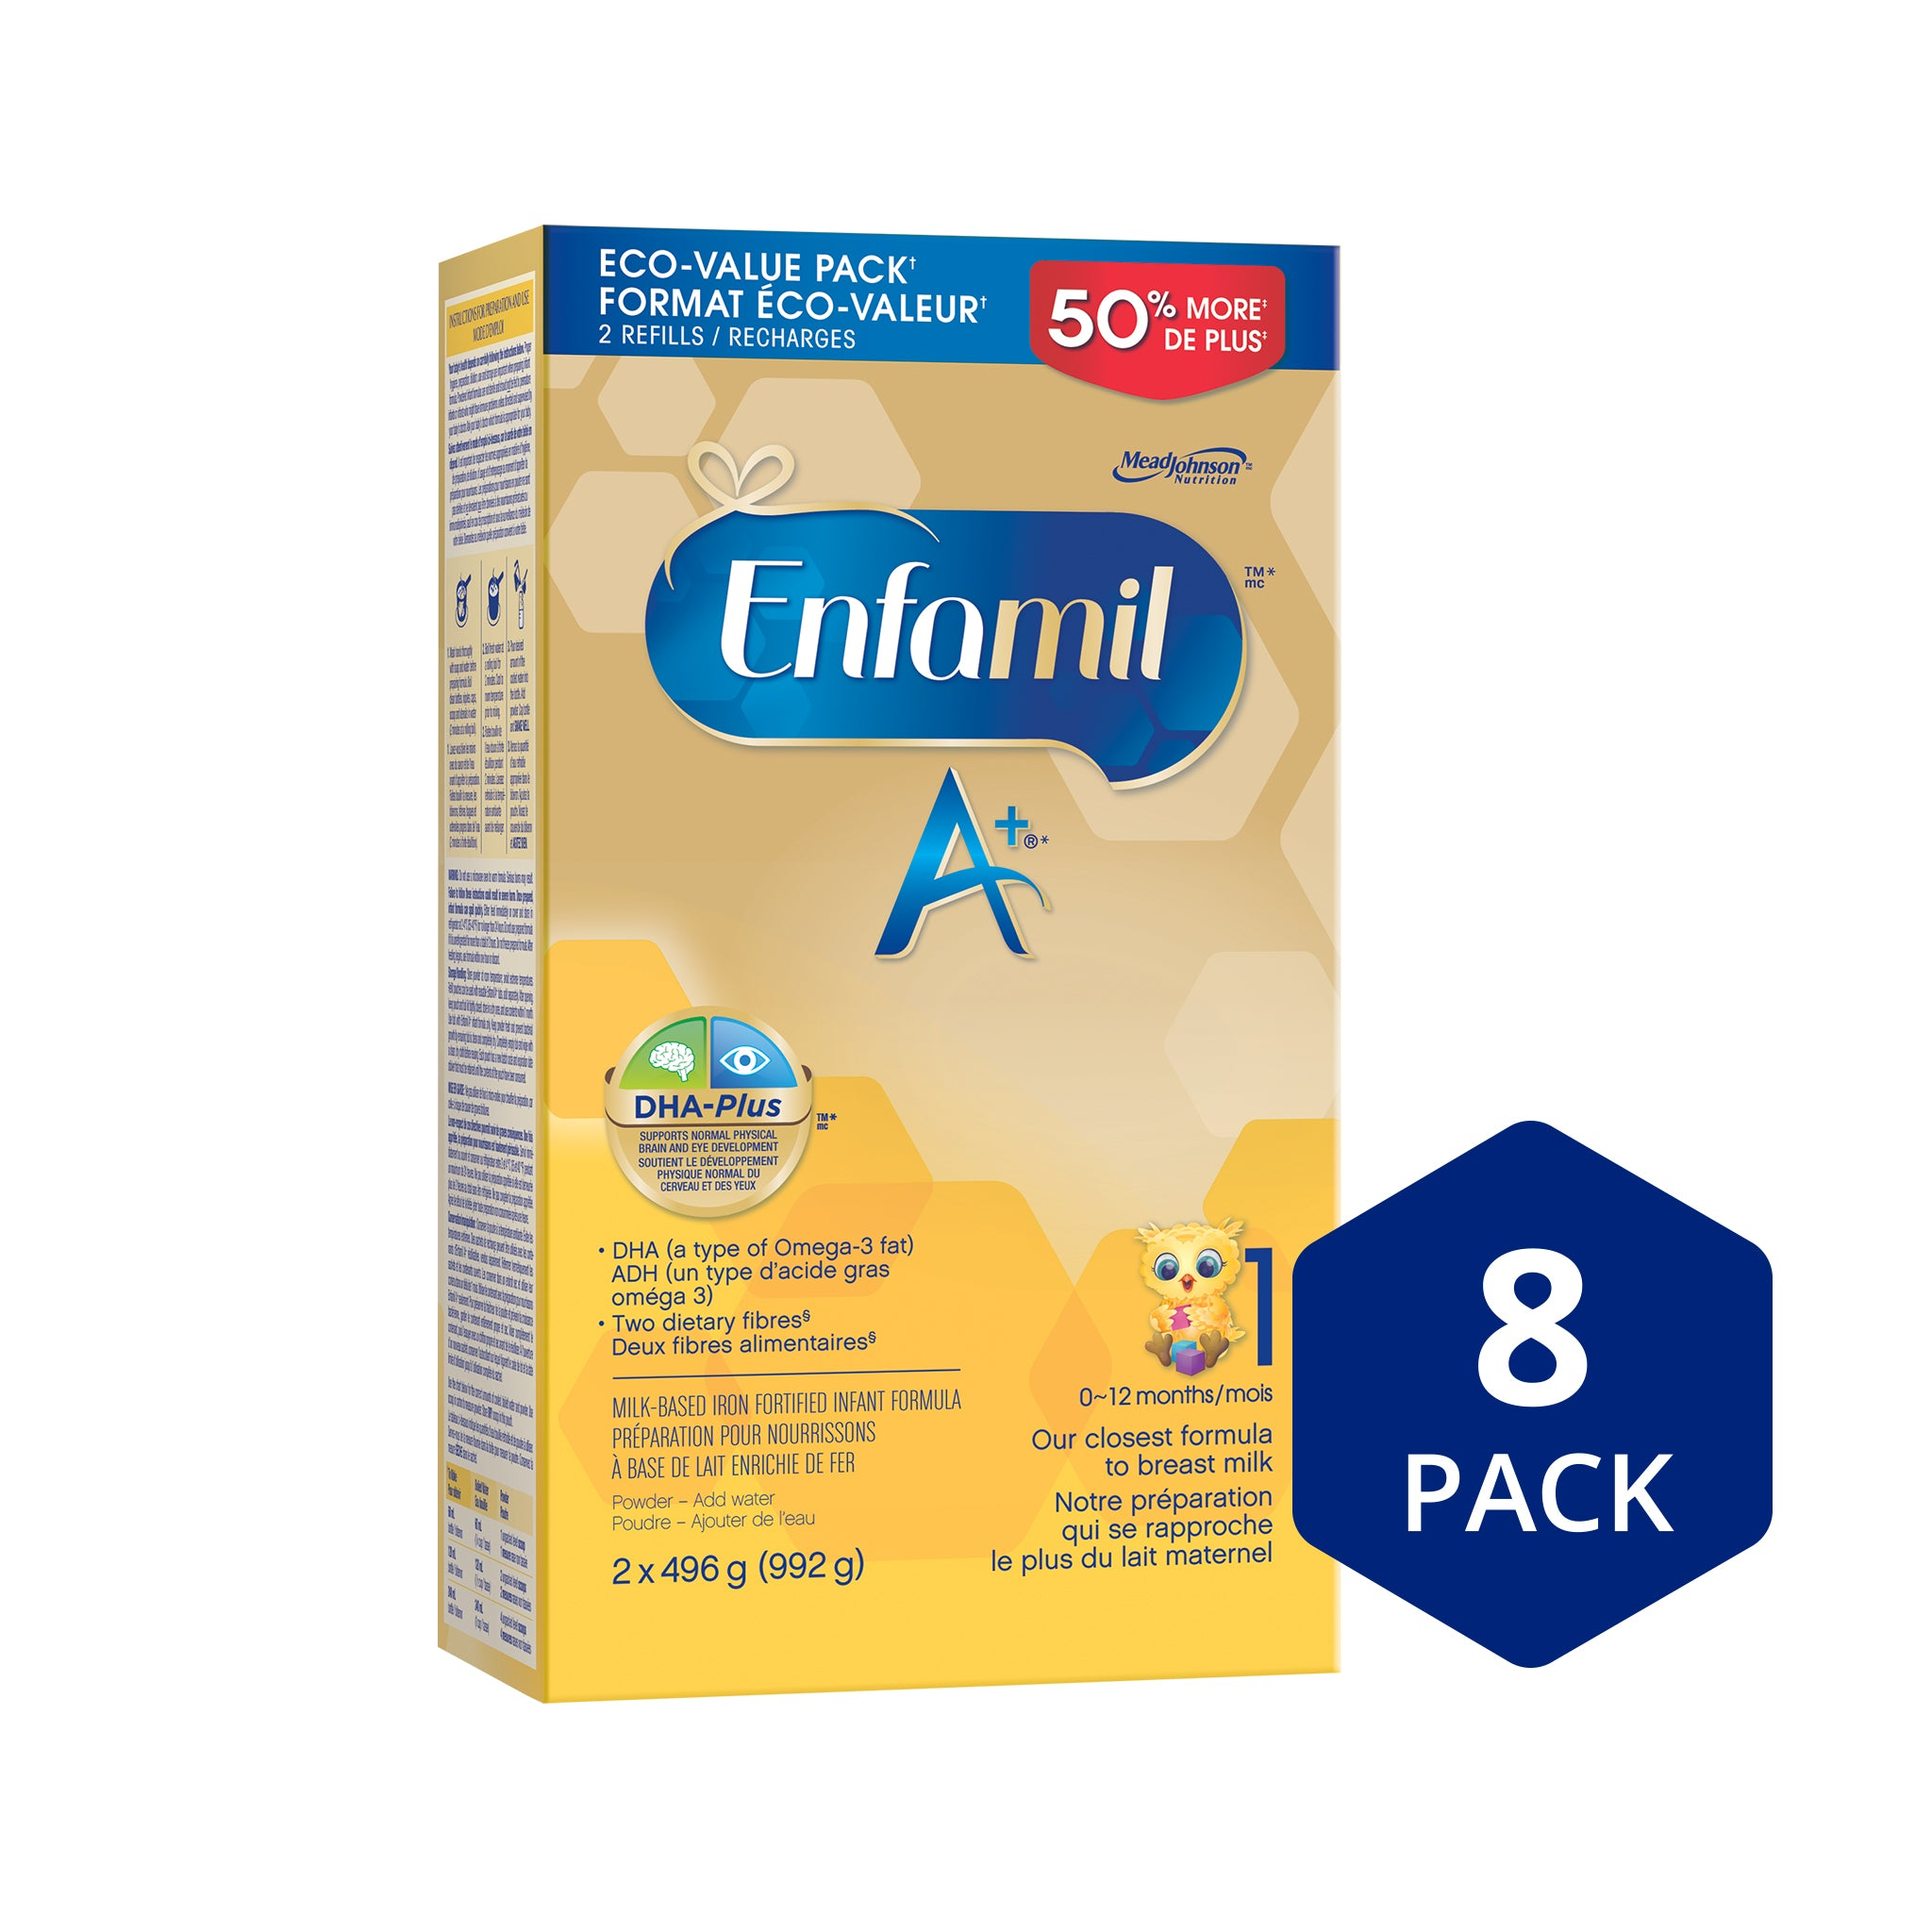 Enfamil A+® Infant Formula, Powder Refill, 992g